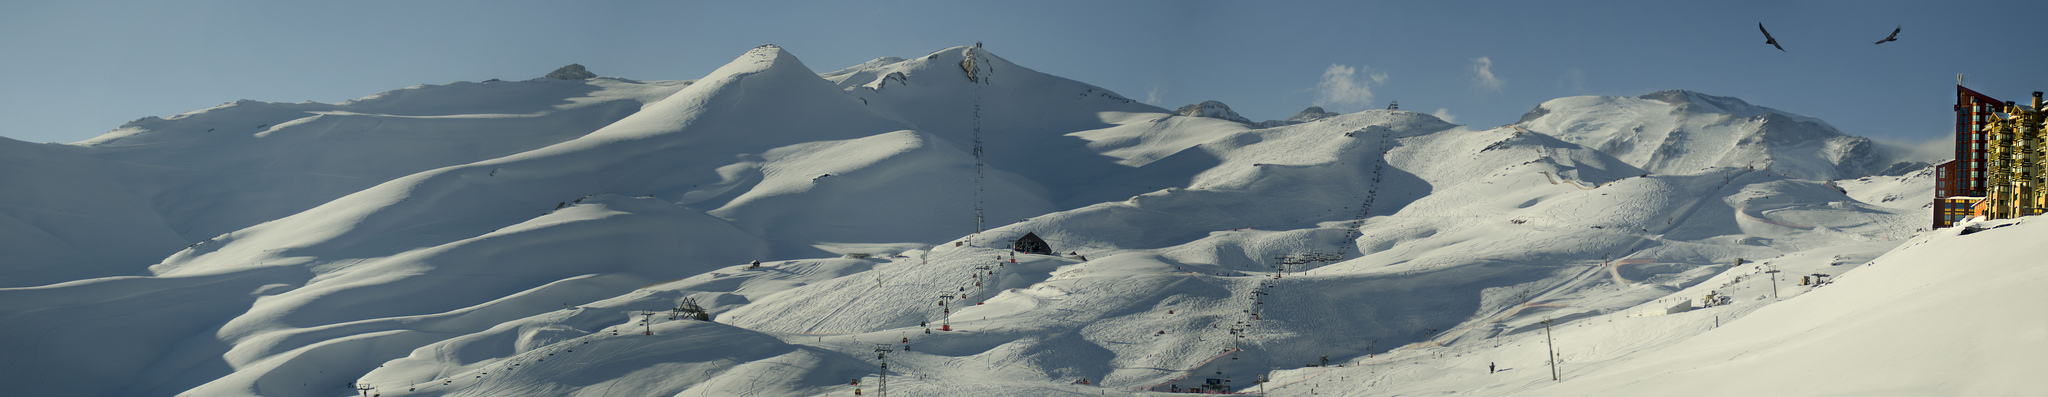 Valle Nevado Ski Resort in Chile - Image taken by Jose Hidalgo - Flickr.com